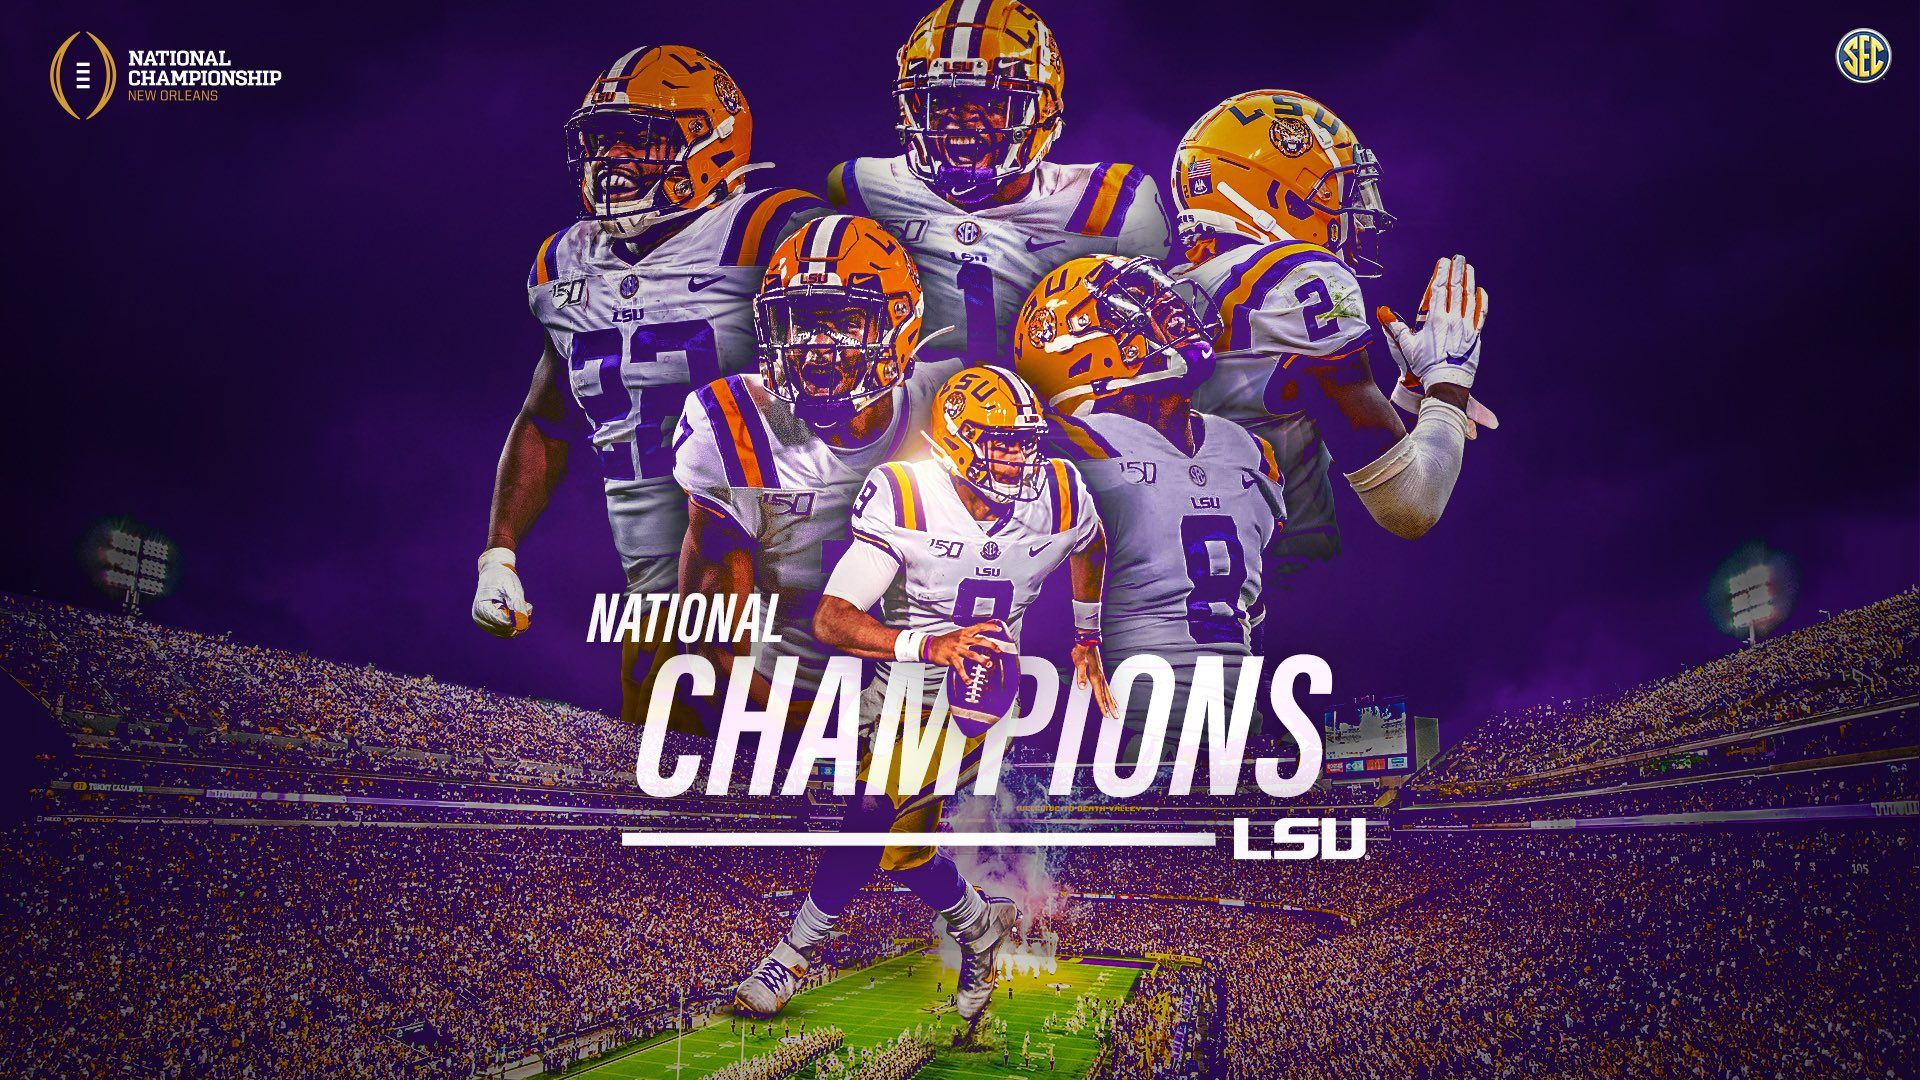 Southeastern Conference On Twitter In 2020 Southeastern Conference National Champions Lsu